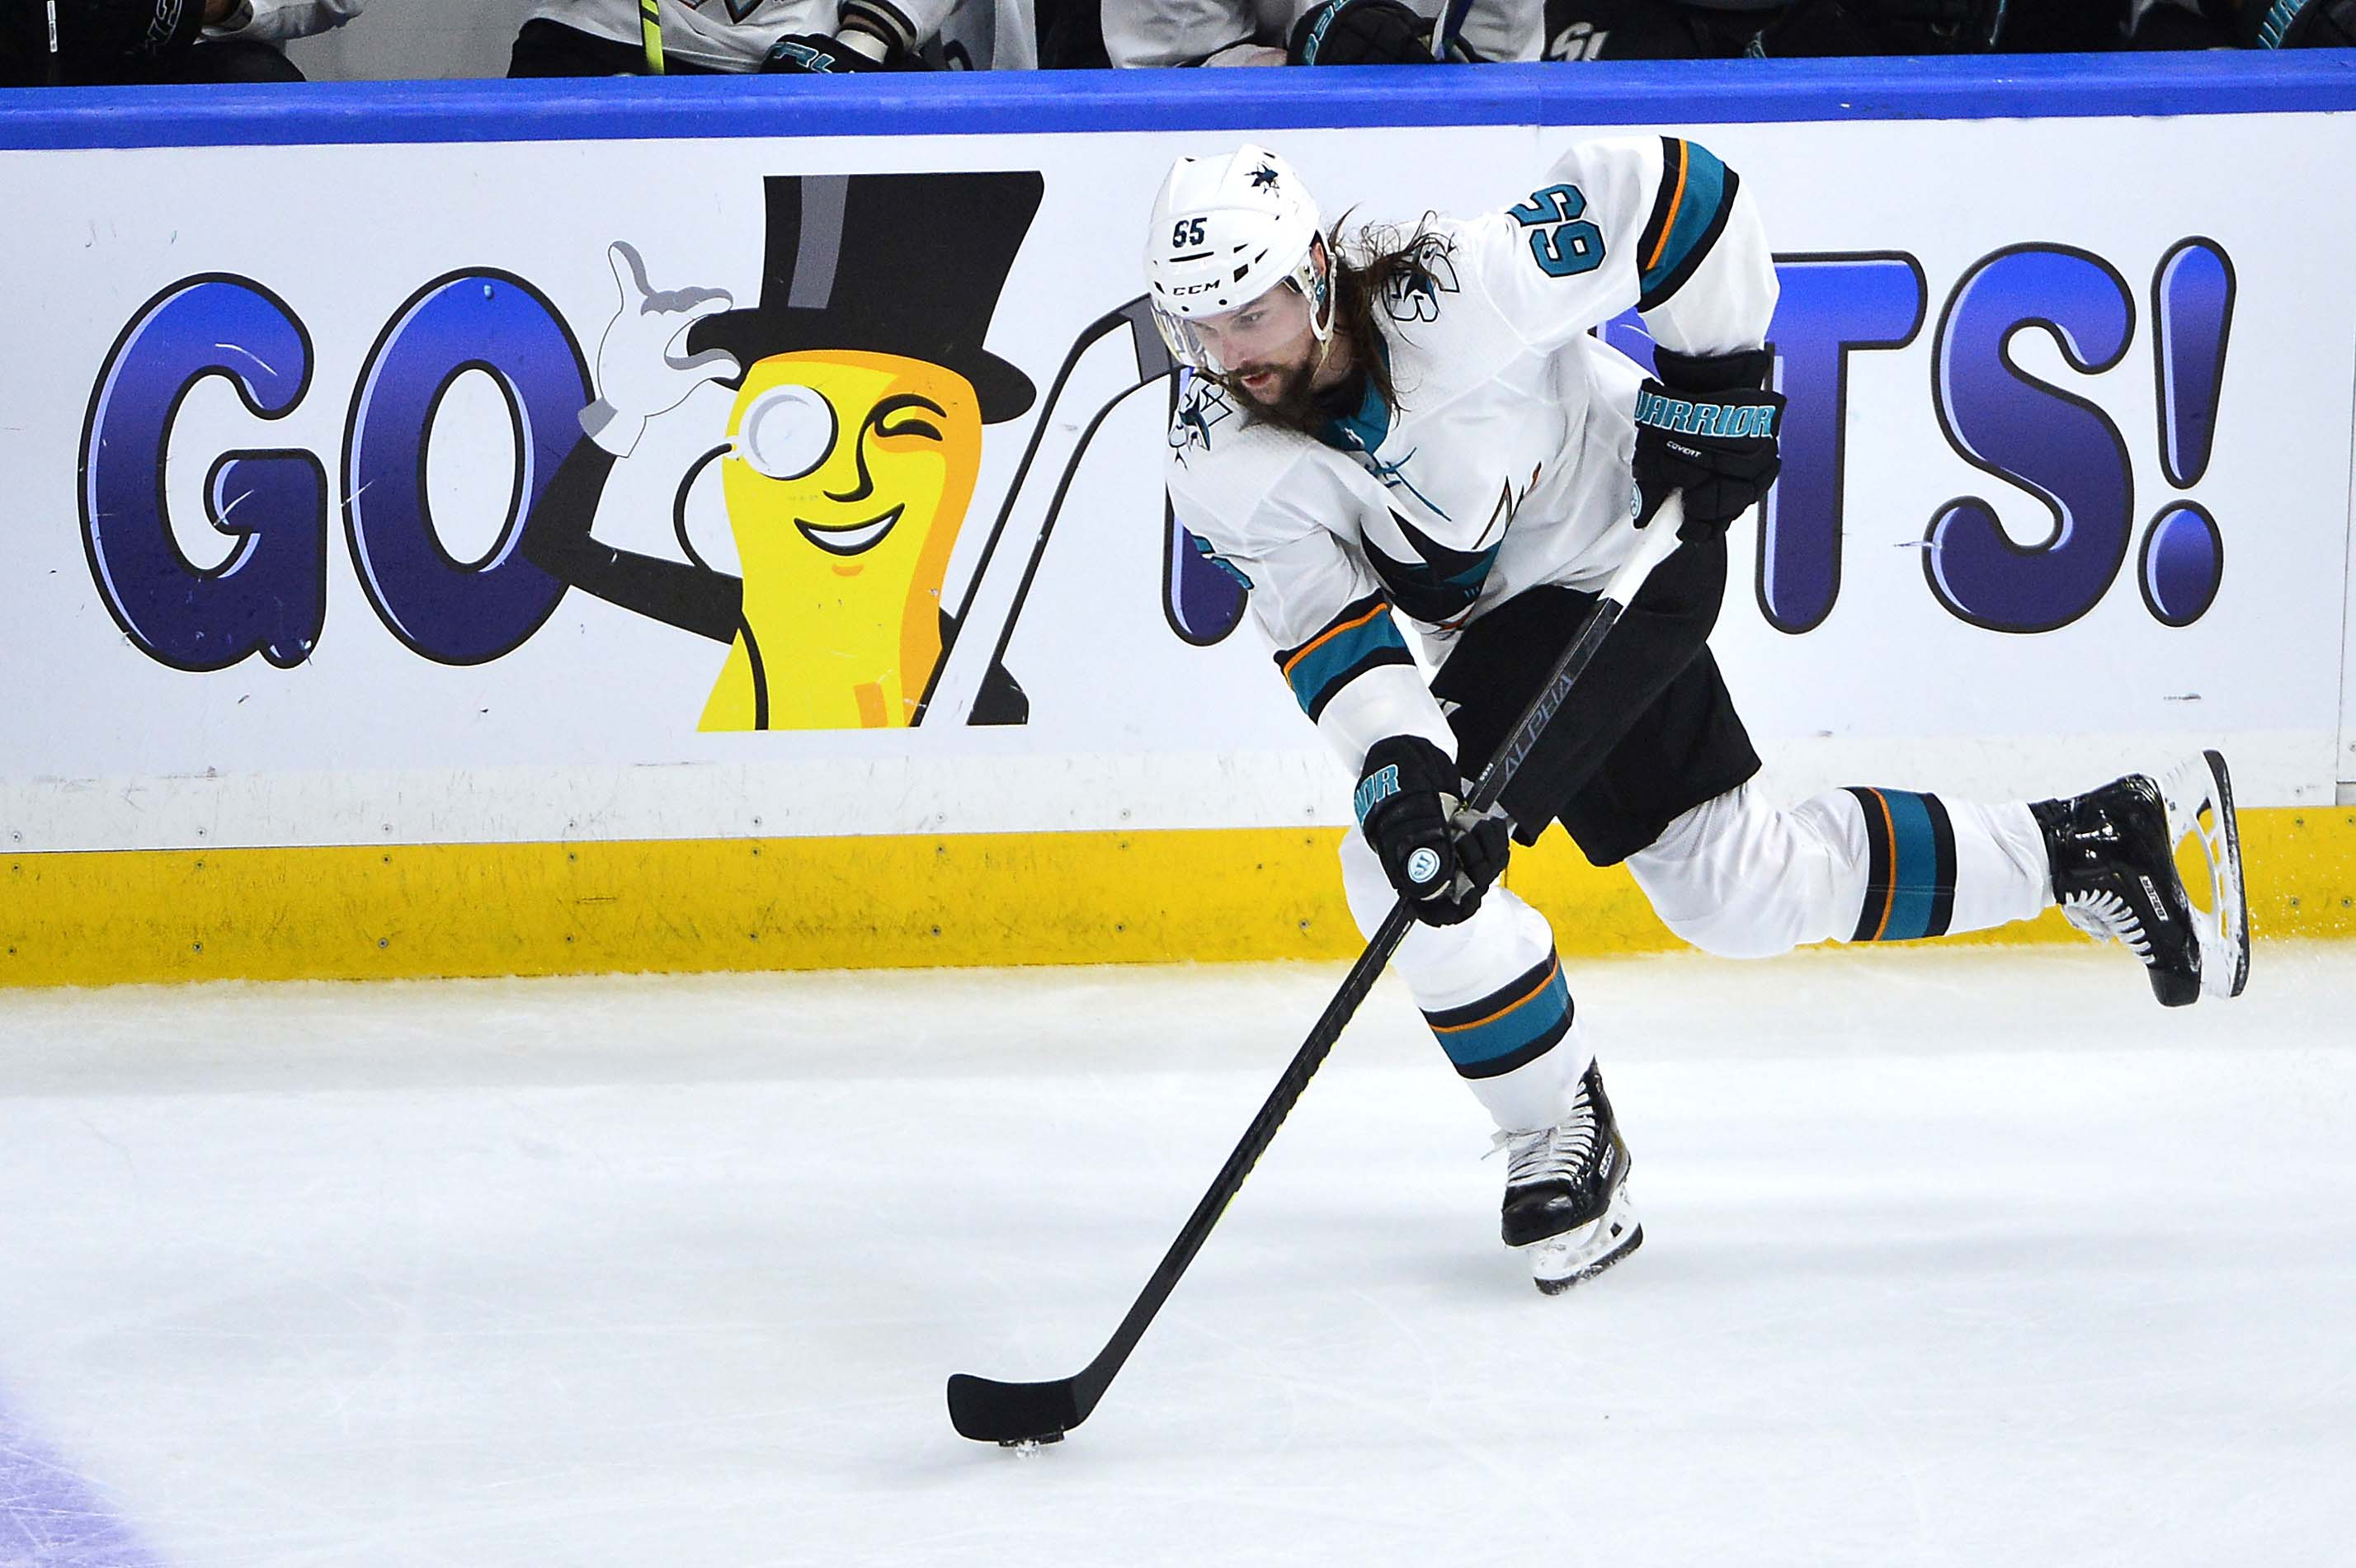 May 17, 2019; St. Louis, MO, USA; San Jose Sharks defenseman Erik Karlsson (65) handles the puck during the third period in game four of the Western Conference Final of the 2019 Stanley Cup Playoffs against the St. Louis Blues at Enterprise Center.